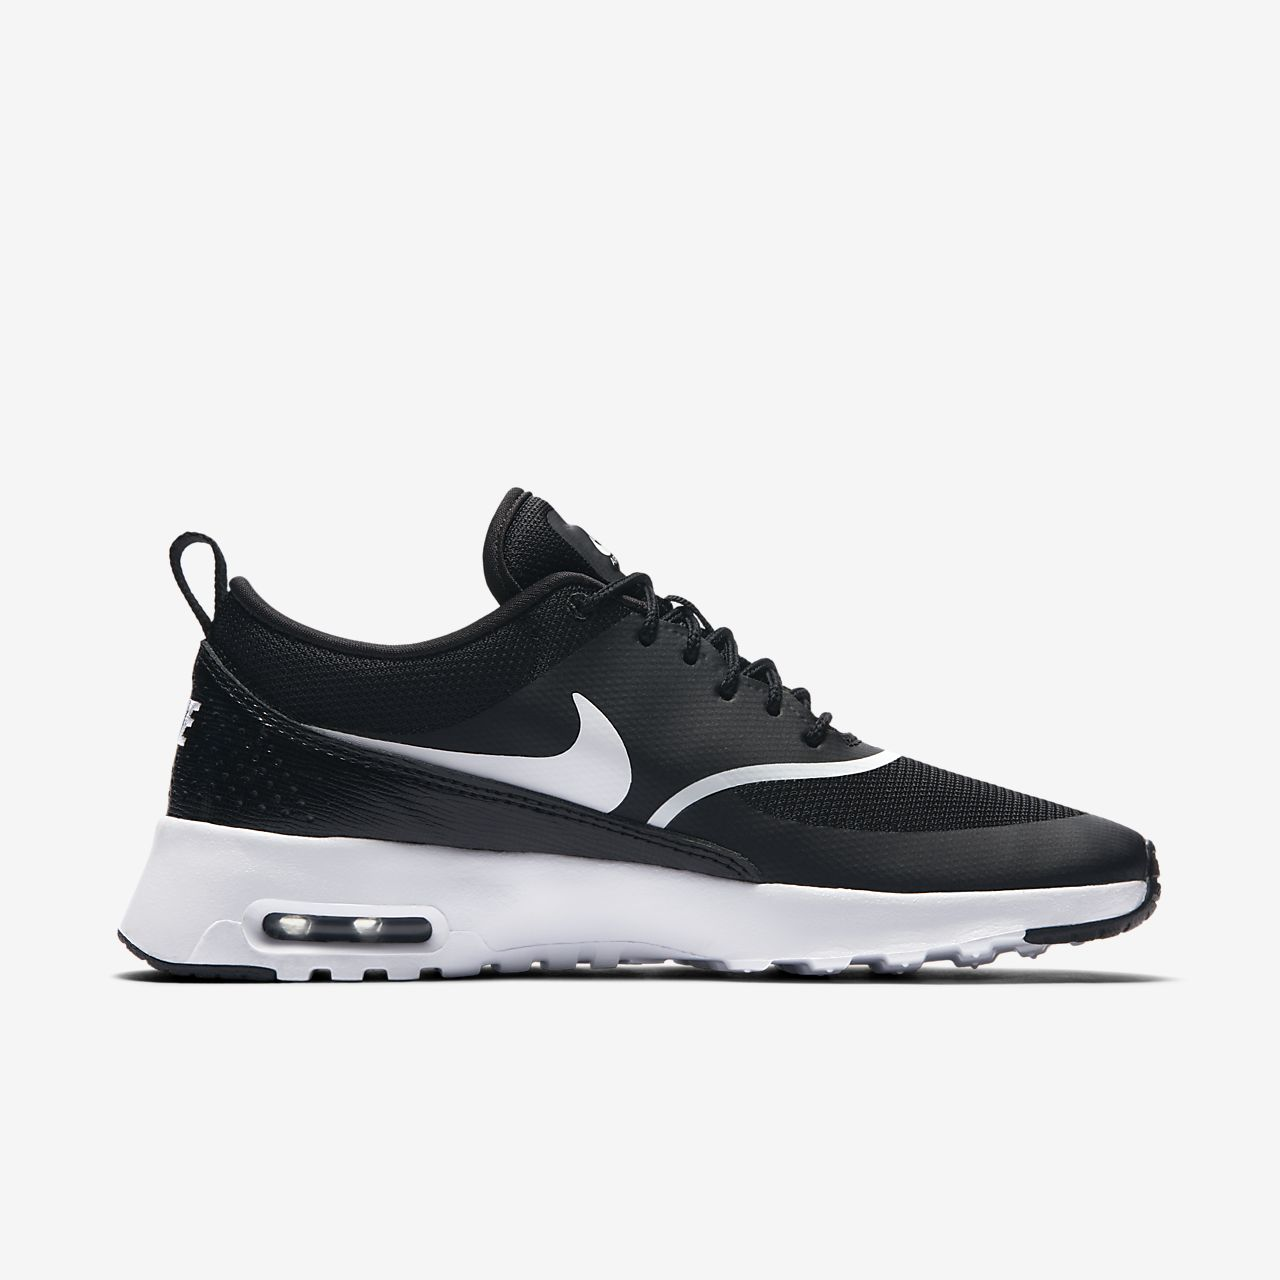 913f613248dba Nike Air Max Thea Women s Shoe. Nike.com GB